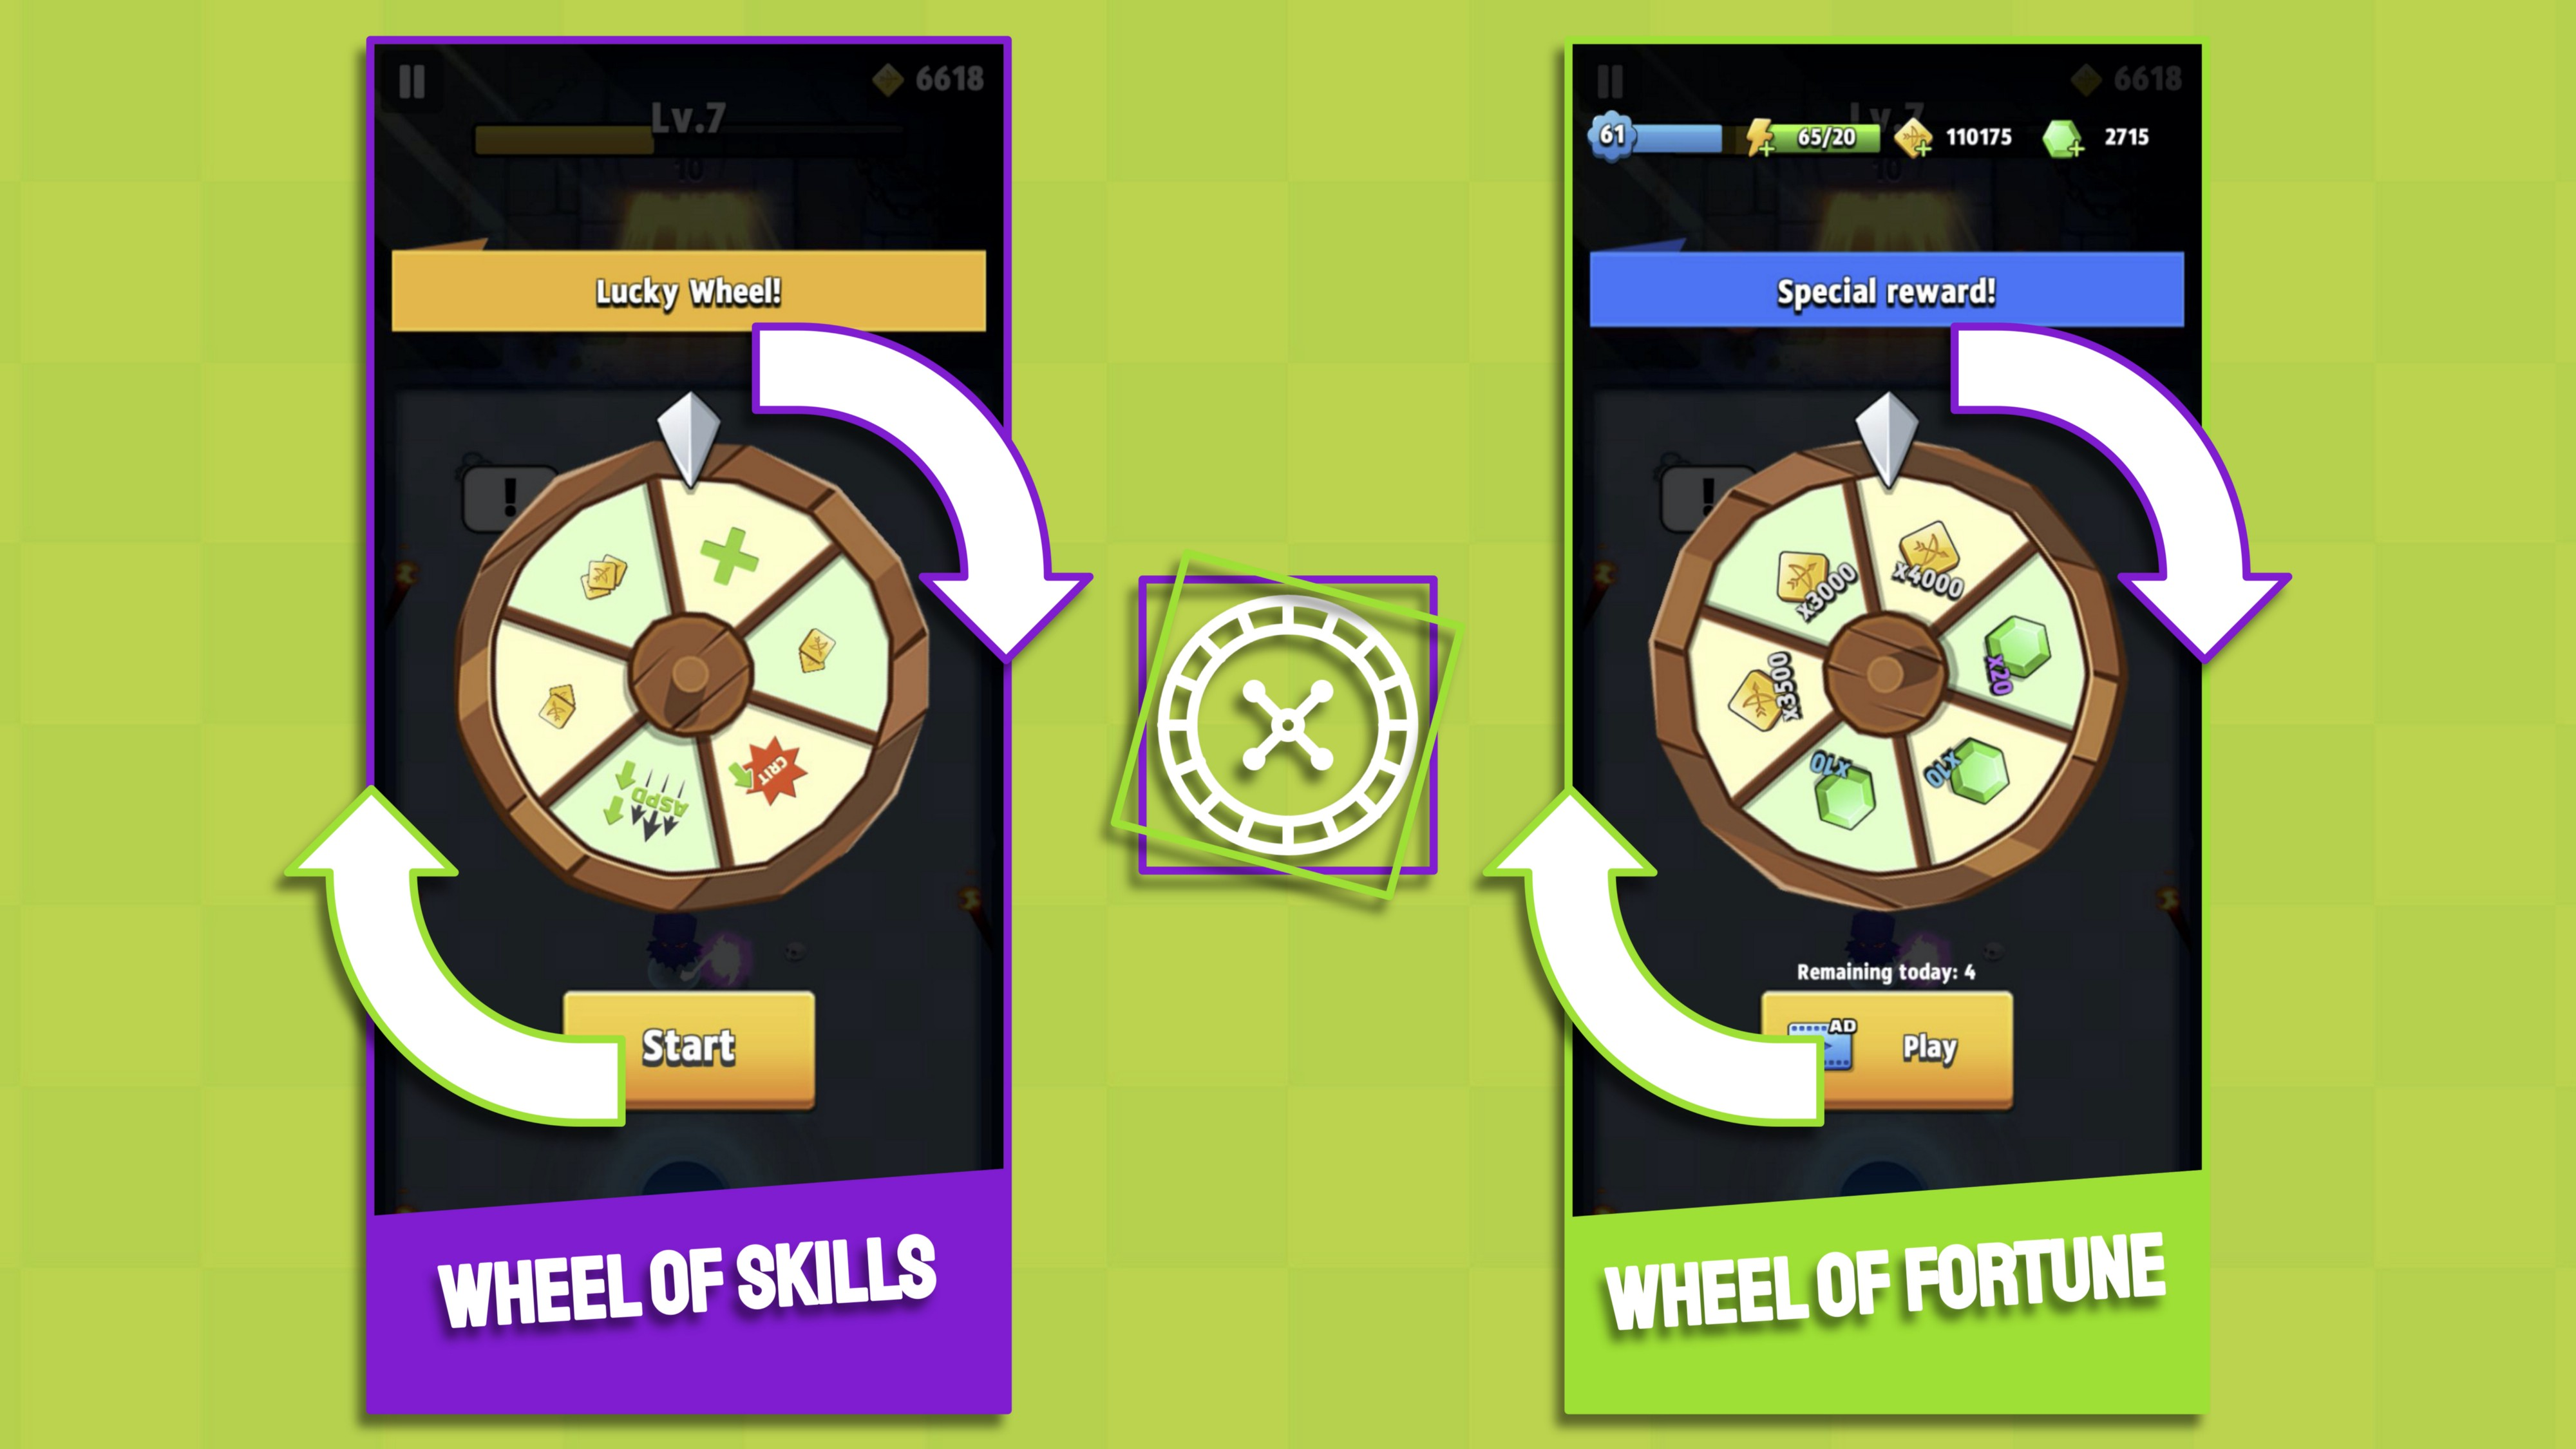 Archero spin to win reward-loop inside battles to engage mobile players